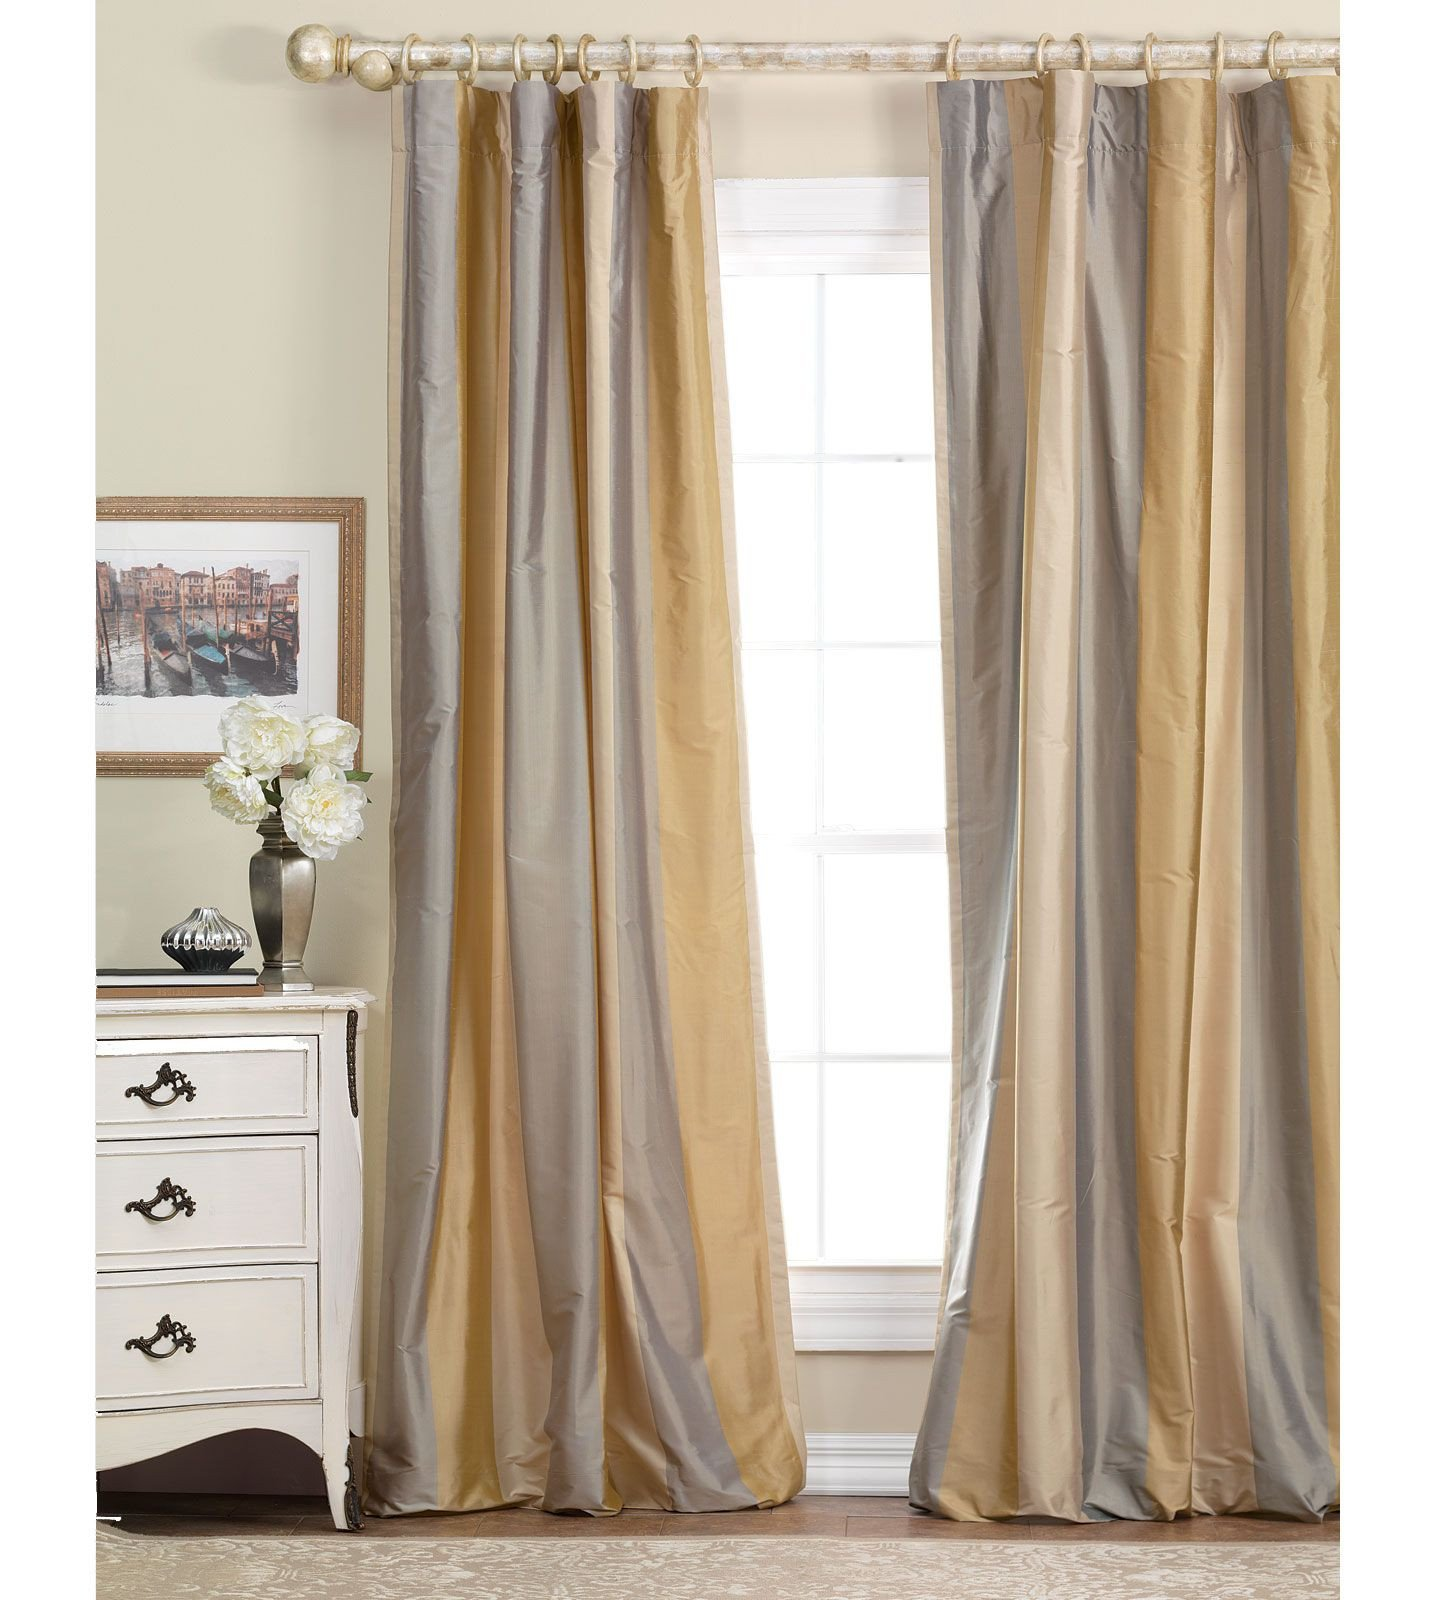 Balloon Curtains for Bedroom Fresh Gold and Gray Silk Curtains